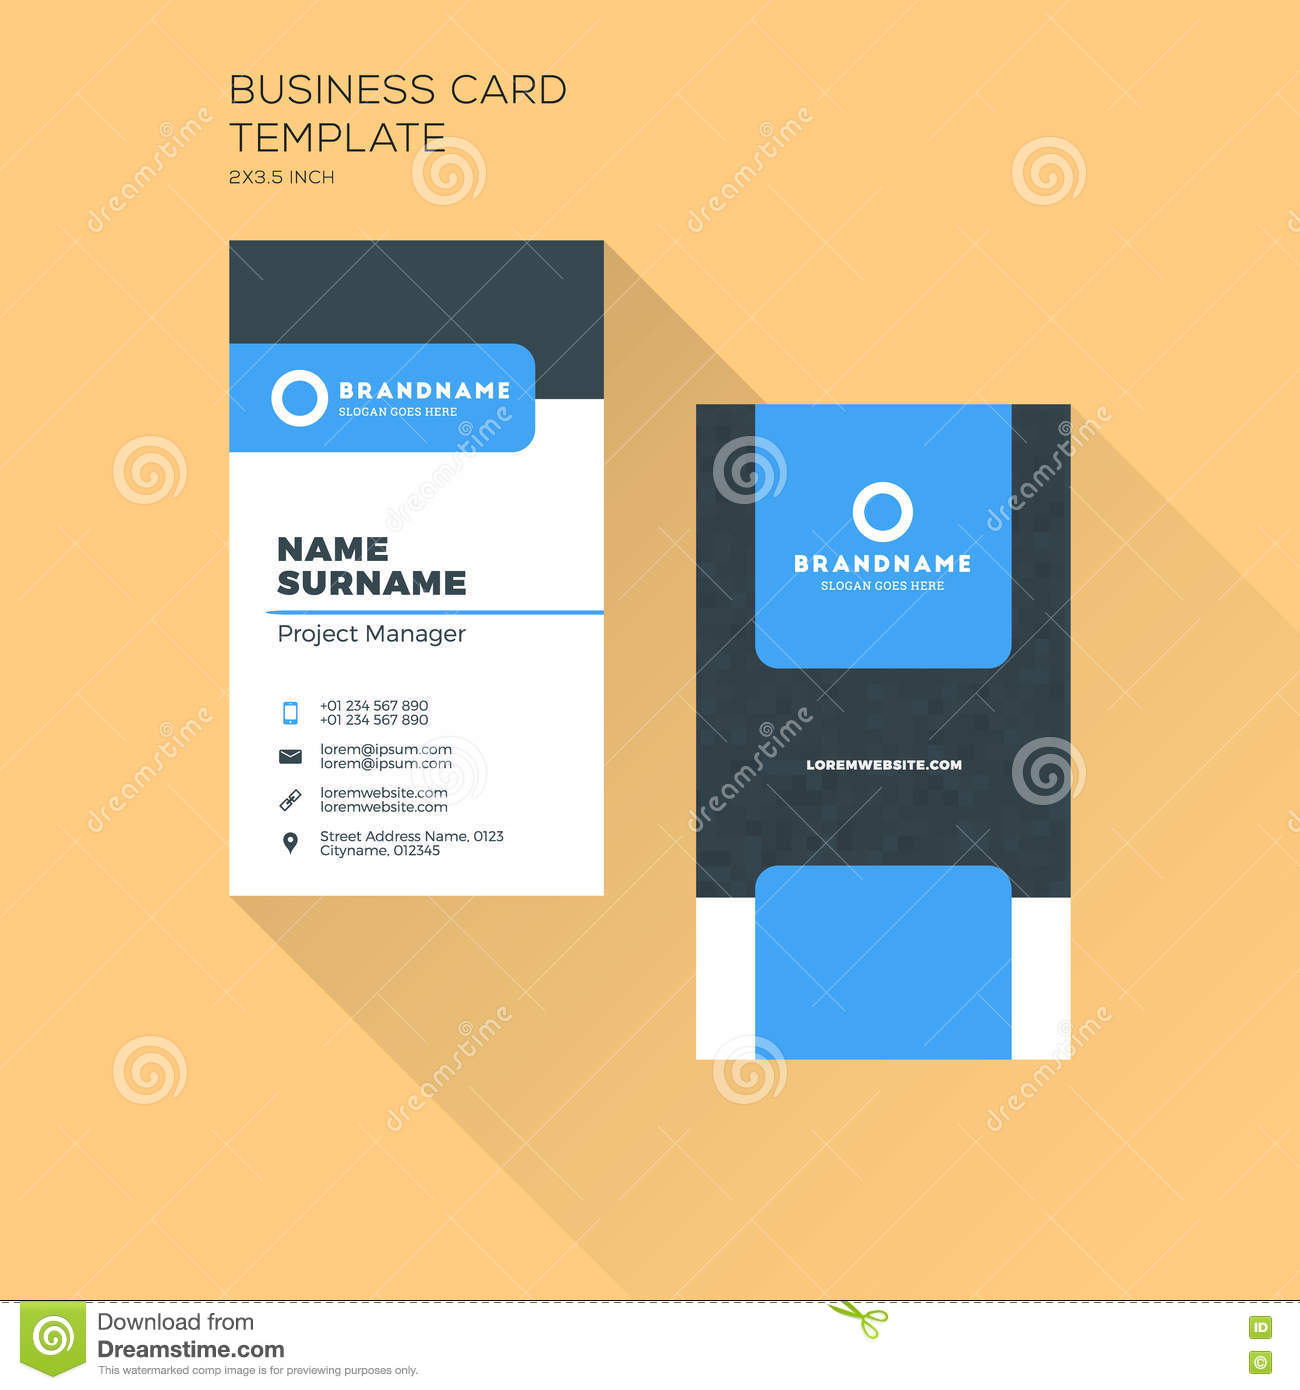 Vertical business card print template personal business card wi download vertical business card print template personal business card wi stock vector illustration of cheaphphosting